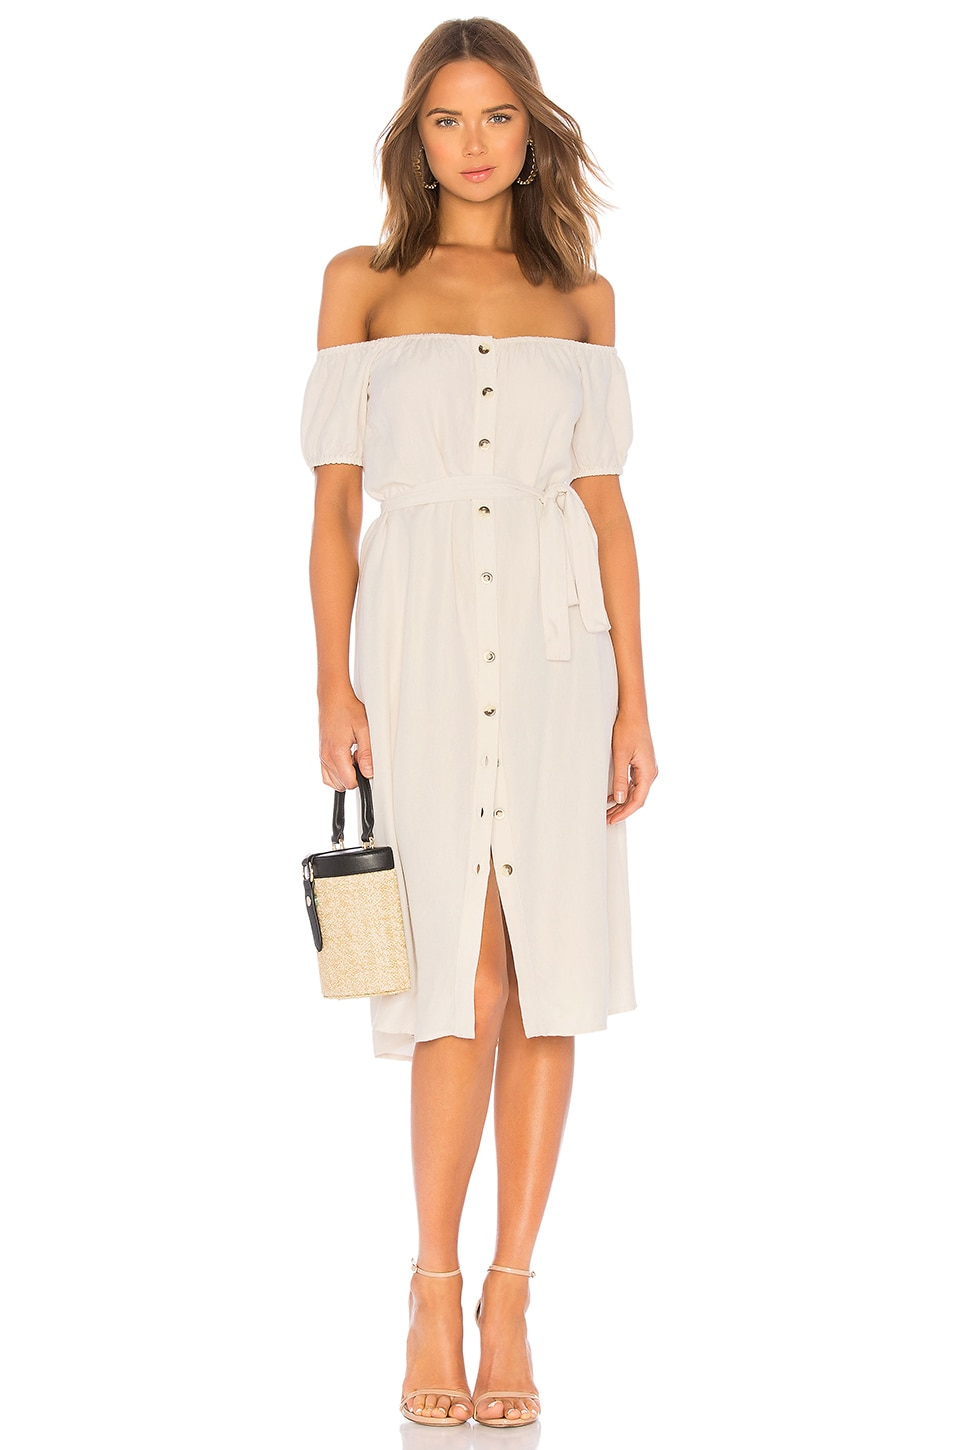 Image result for revolve L'Academie callao midi dress